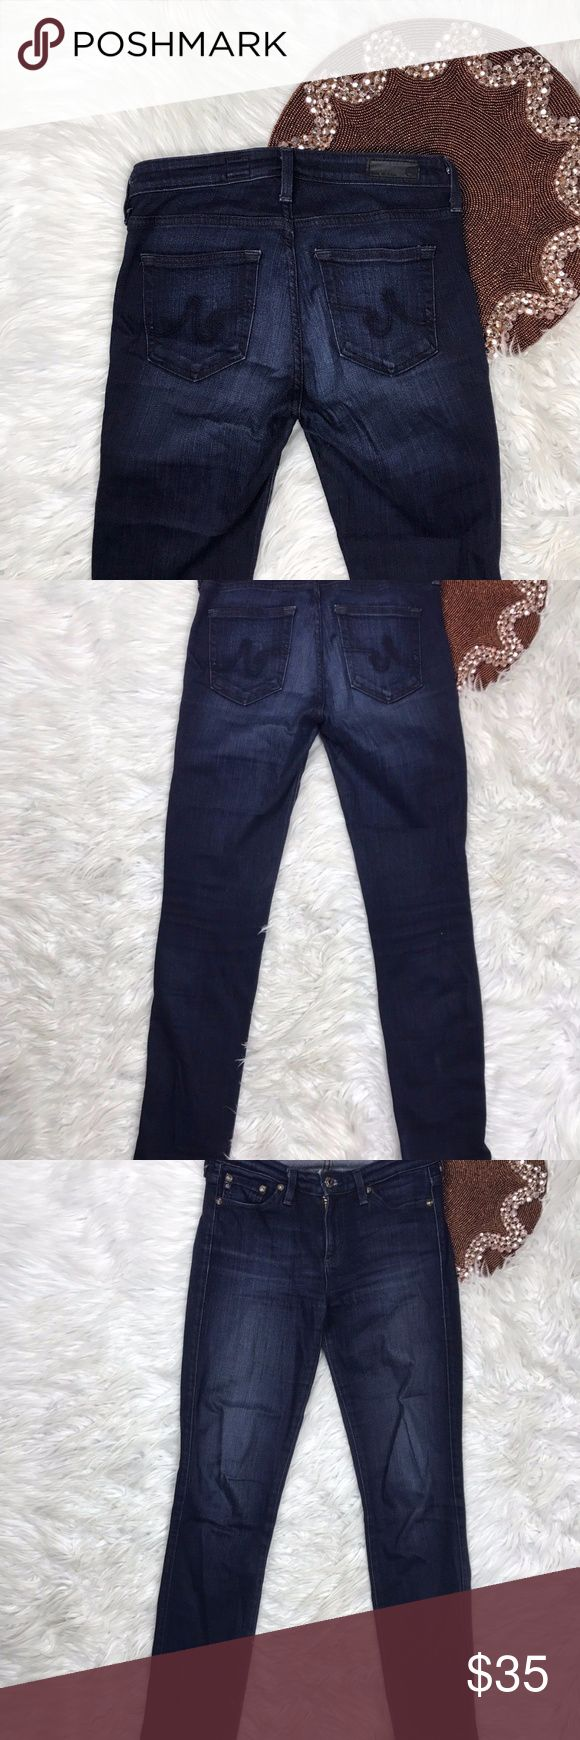 AG THE PRIMA CIGARETTE Mid Rise Size 25 Q22 Hemmed See Picture   Tiny Spot On Knee See picture   Top Rated Posh Seller   Pre Owned  * Color(s) may vary slightly from photos  * Refer to photos for detail, photos are considered part of the description Ag Adriano Goldschmied Jeans Skinny